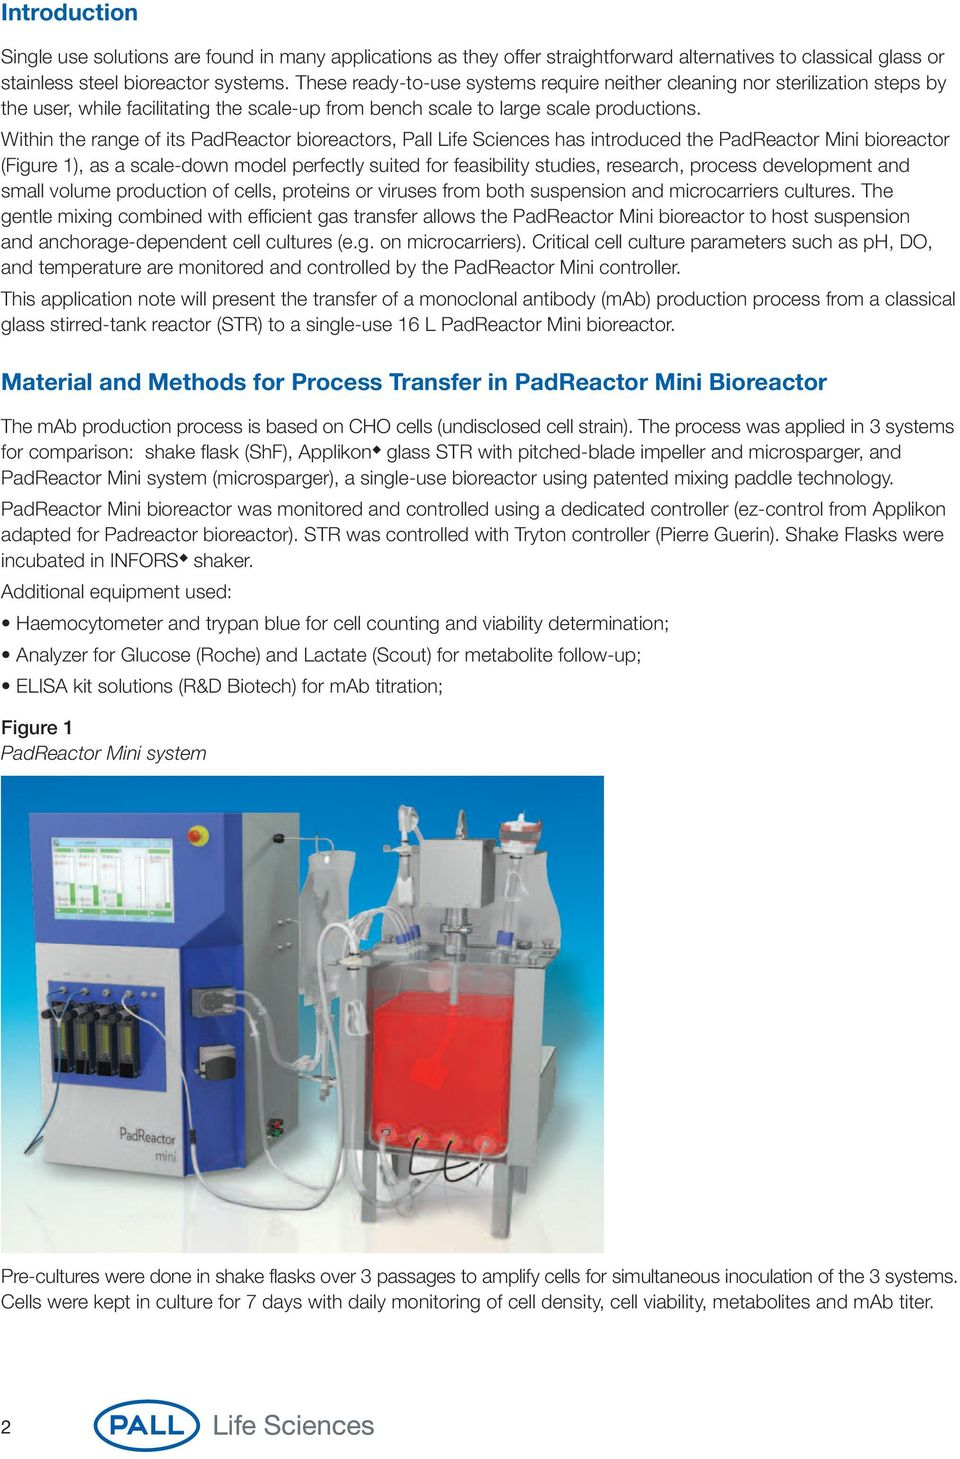 Within the range of its PadReactor bioreactors, Pall Life Sciences has introduced the PadReactor Mini bioreactor (Figure 1), as a scale-down model perfectly suited for feasibility studies, research,